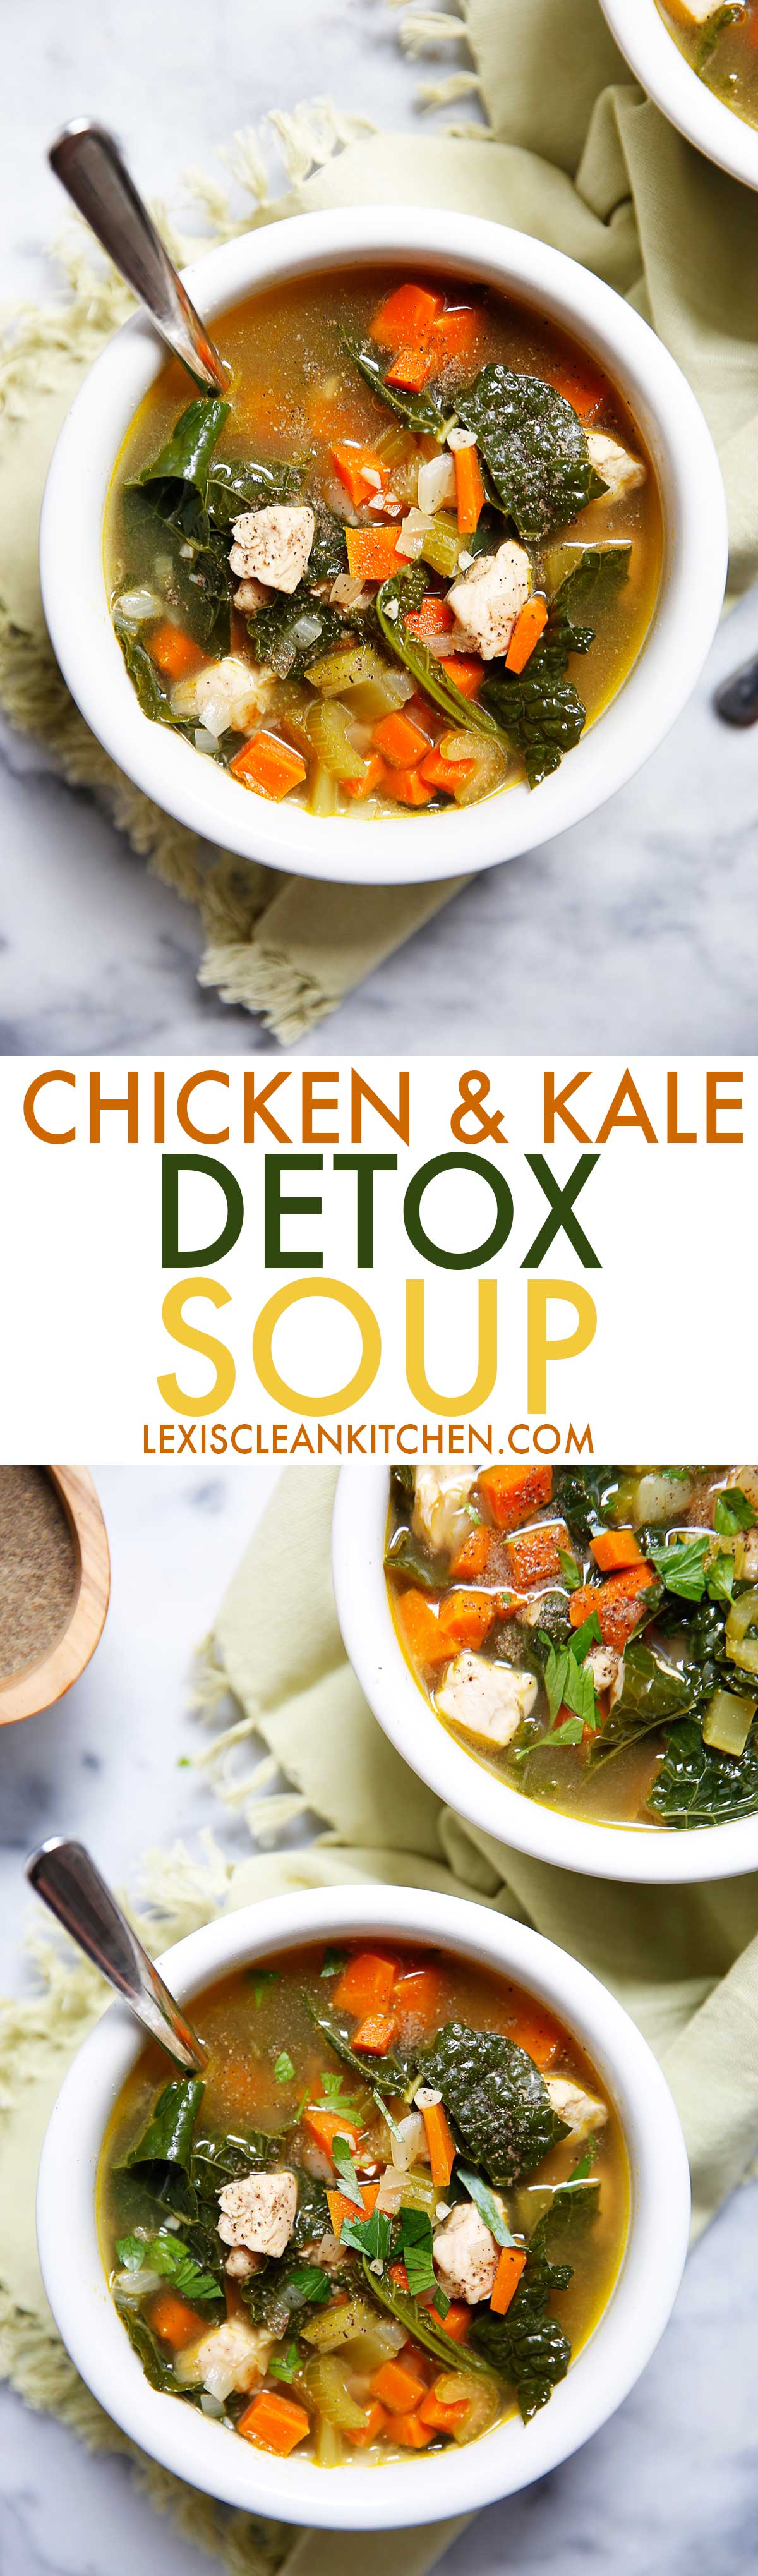 Chicken Kale Detox Soup | Lexi's Clean Kitchen